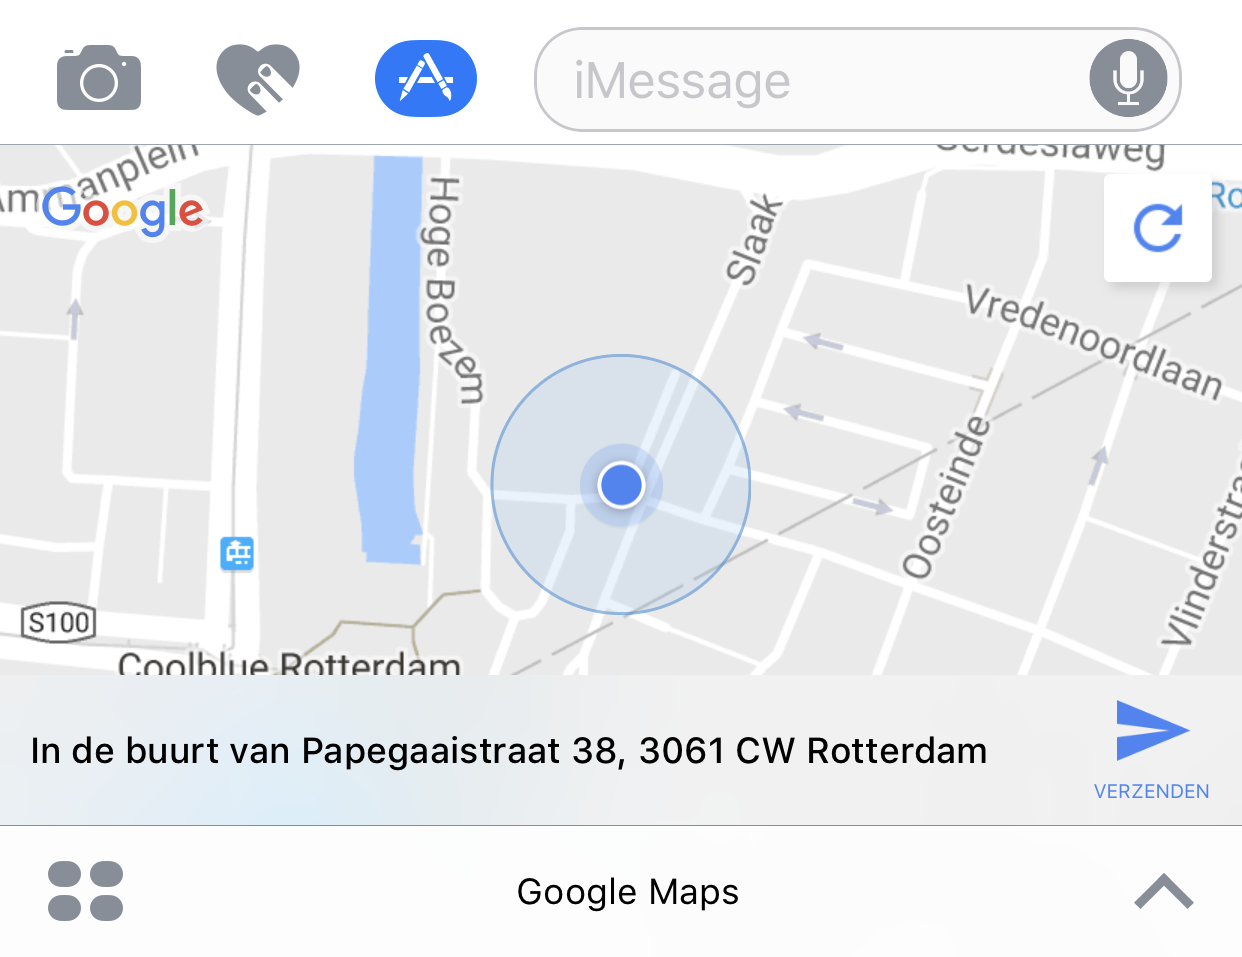 google maps imessage-app